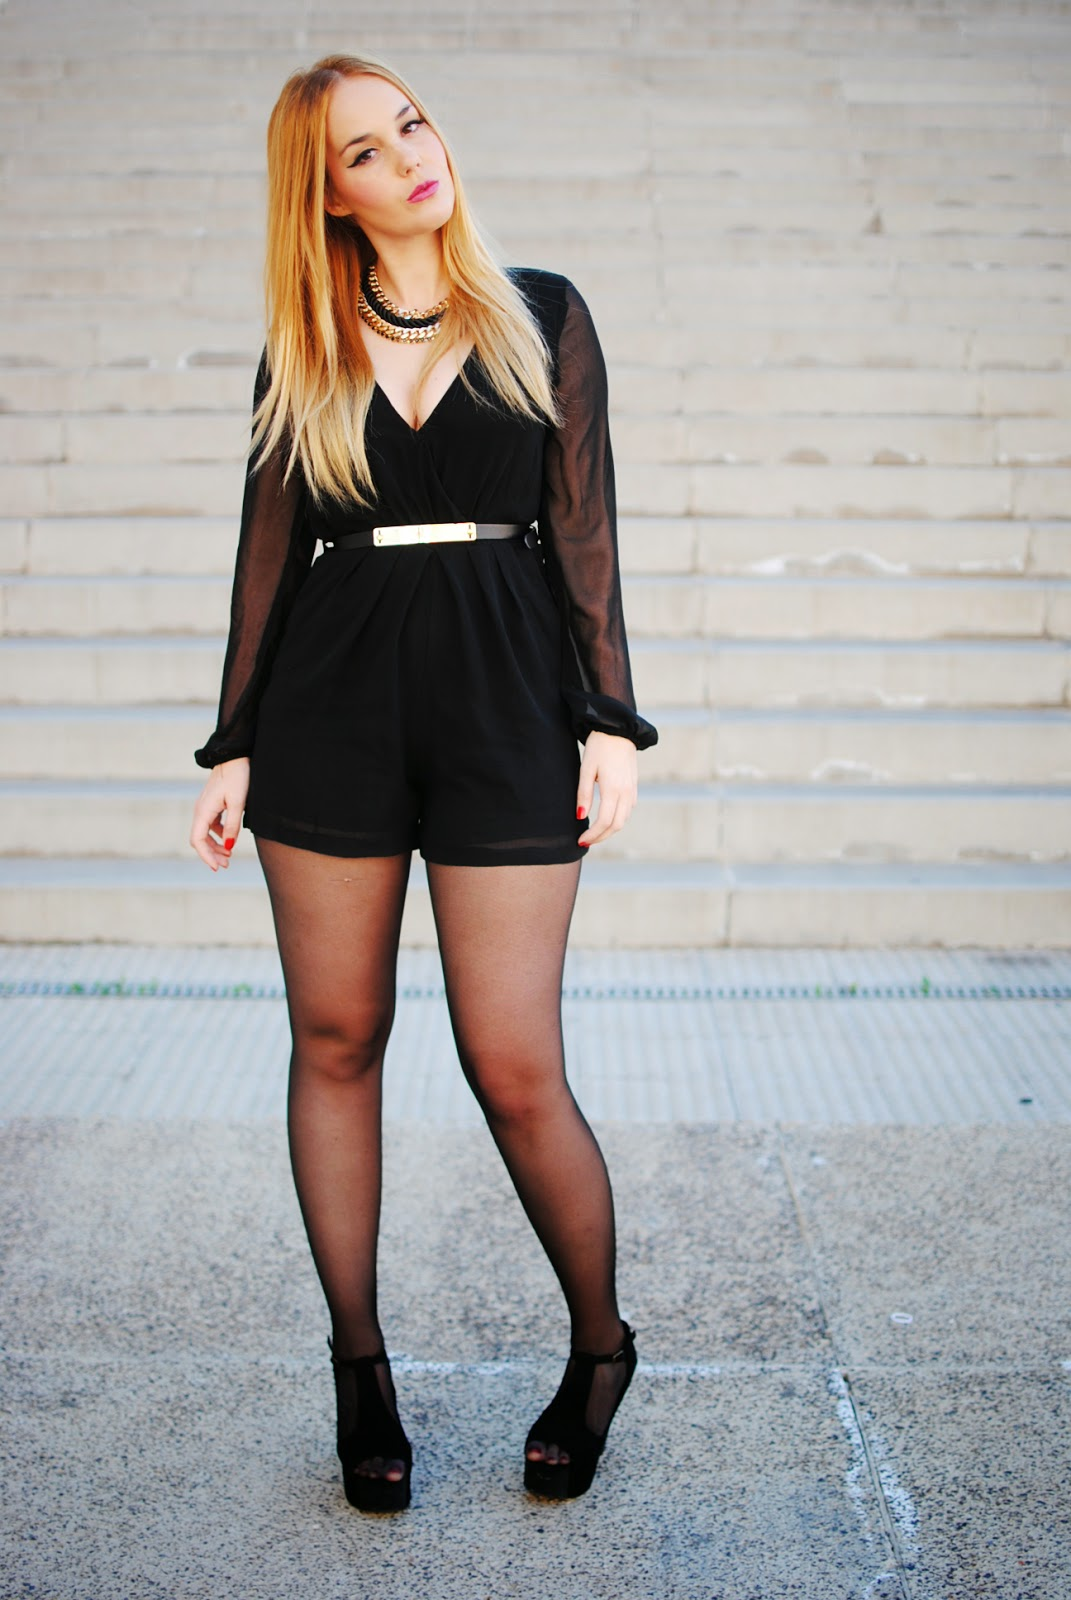 nery hdez, blonde, playsuit, axparis, total black, axparis blogger, zara necklace